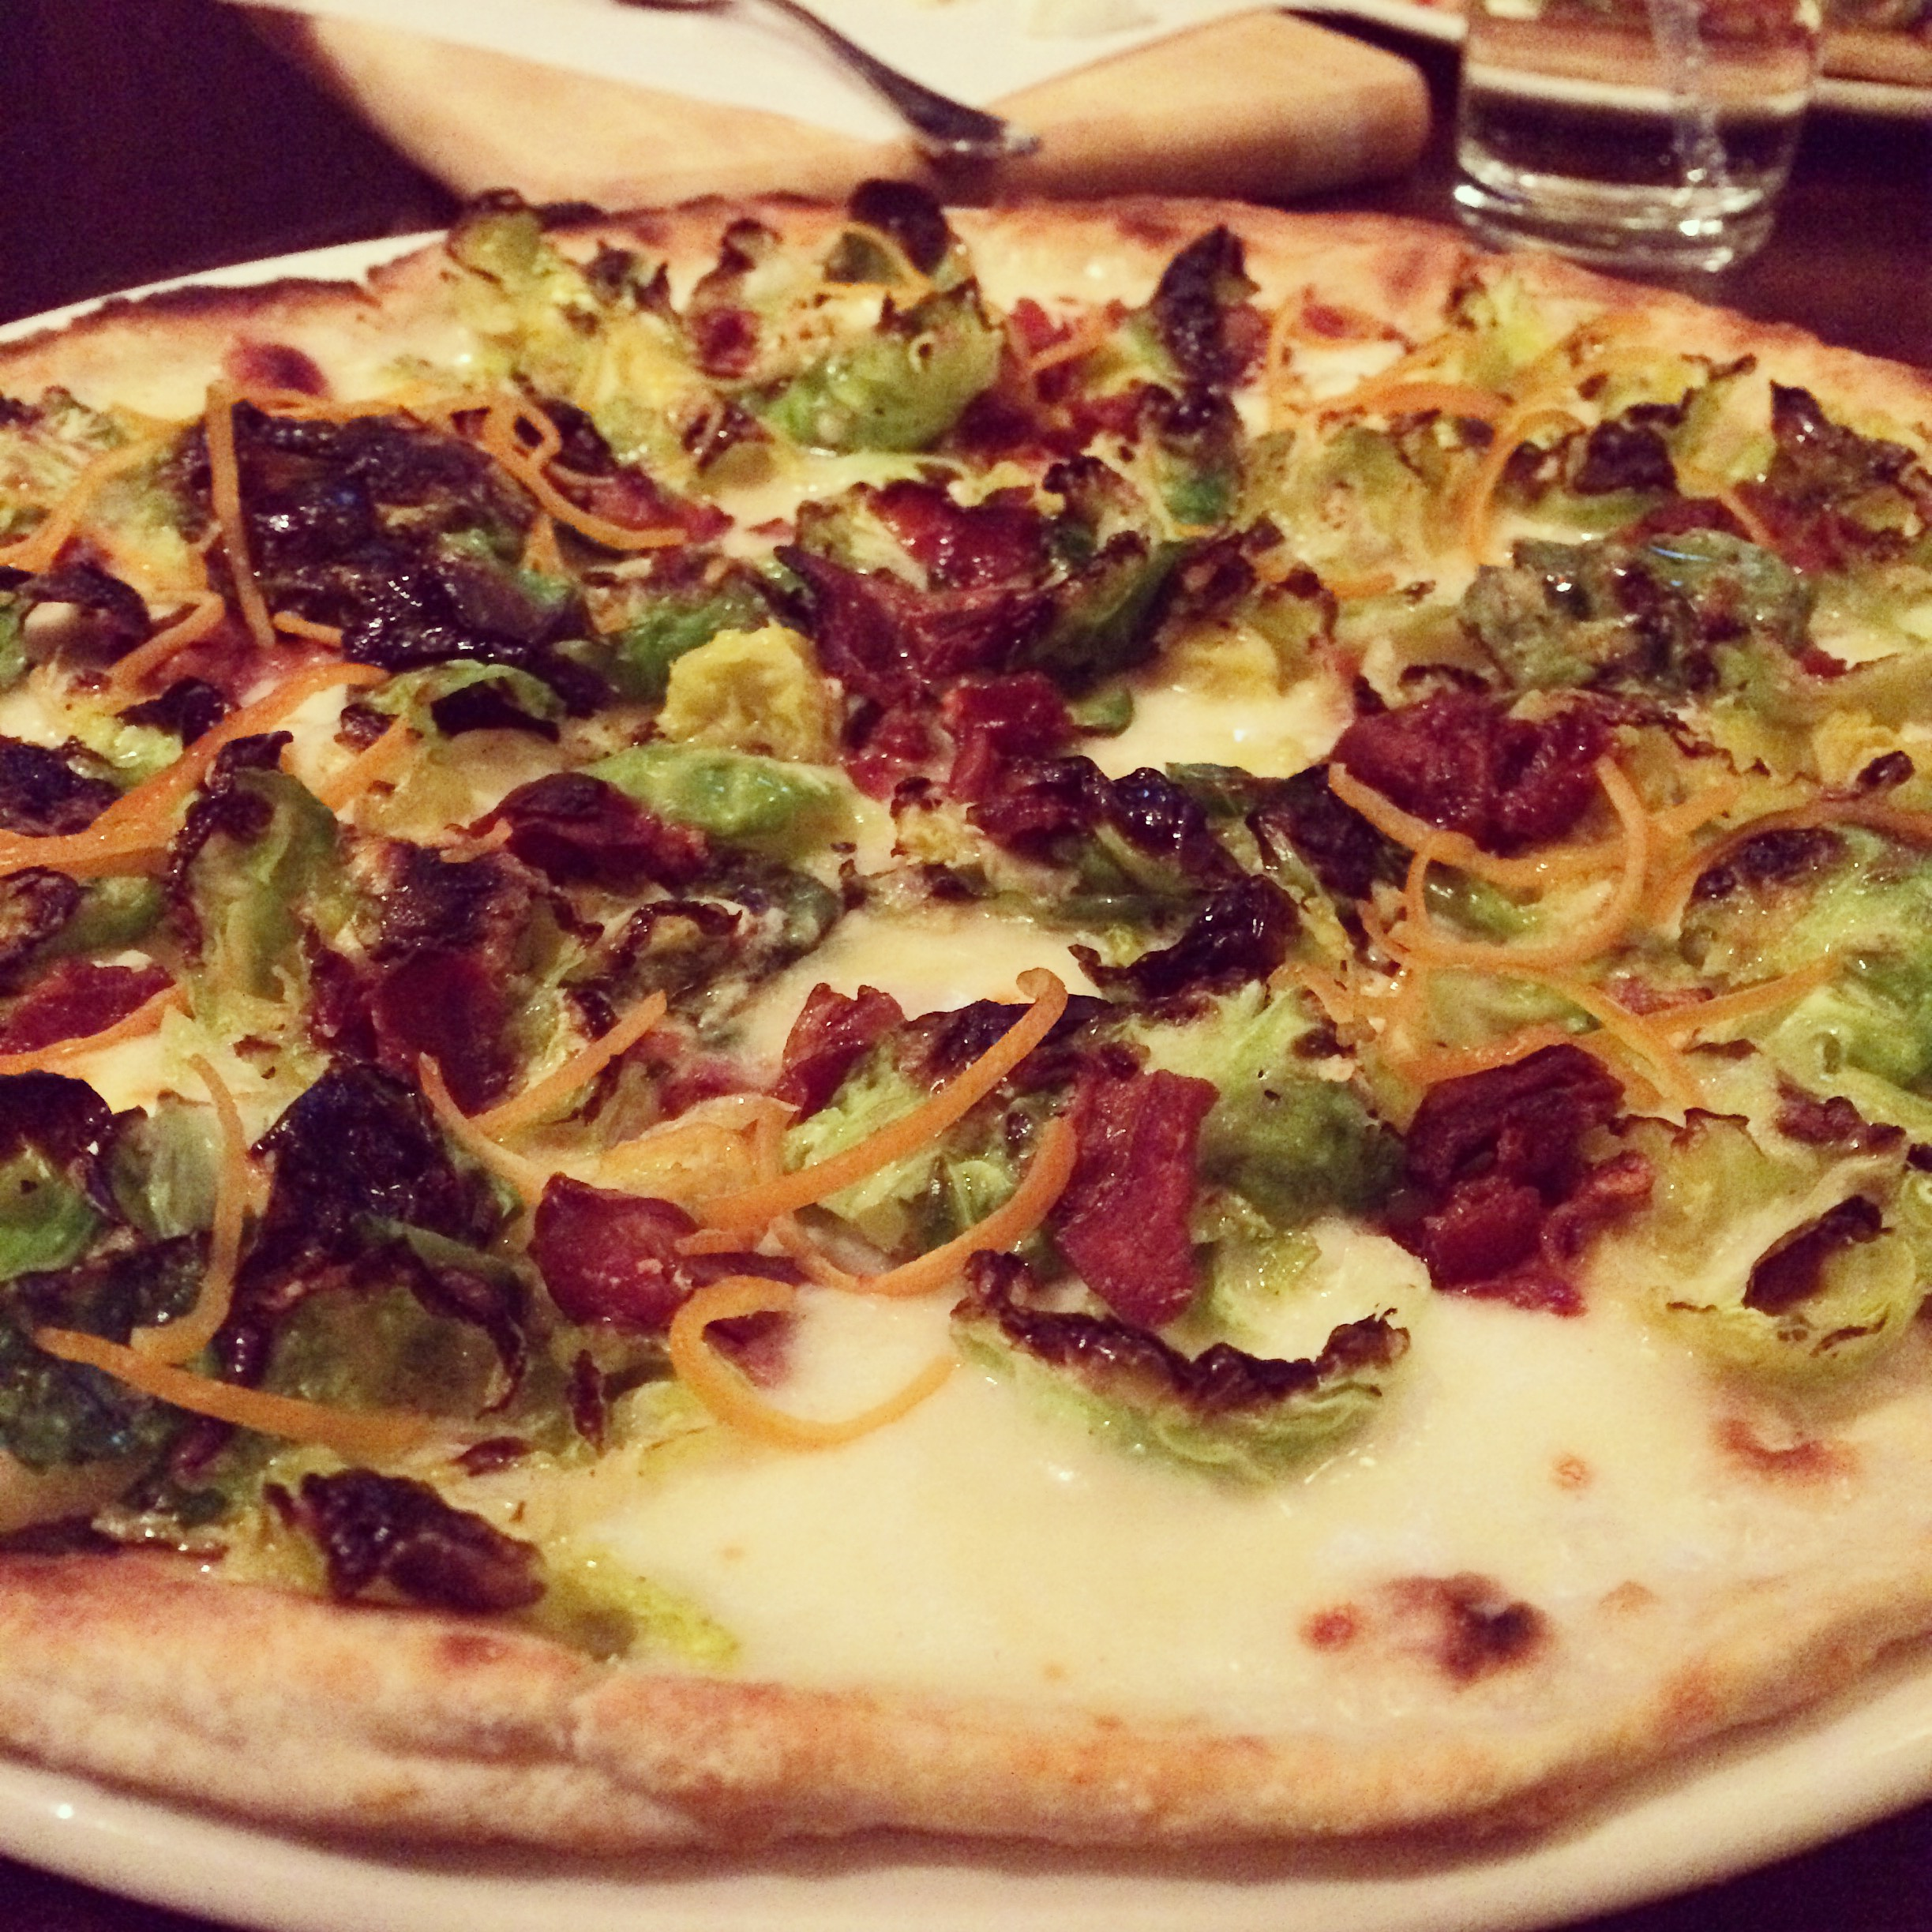 Brussels Sprouts pizza at Otto Enoteca, photo courtesy of Vox Solid Communications.